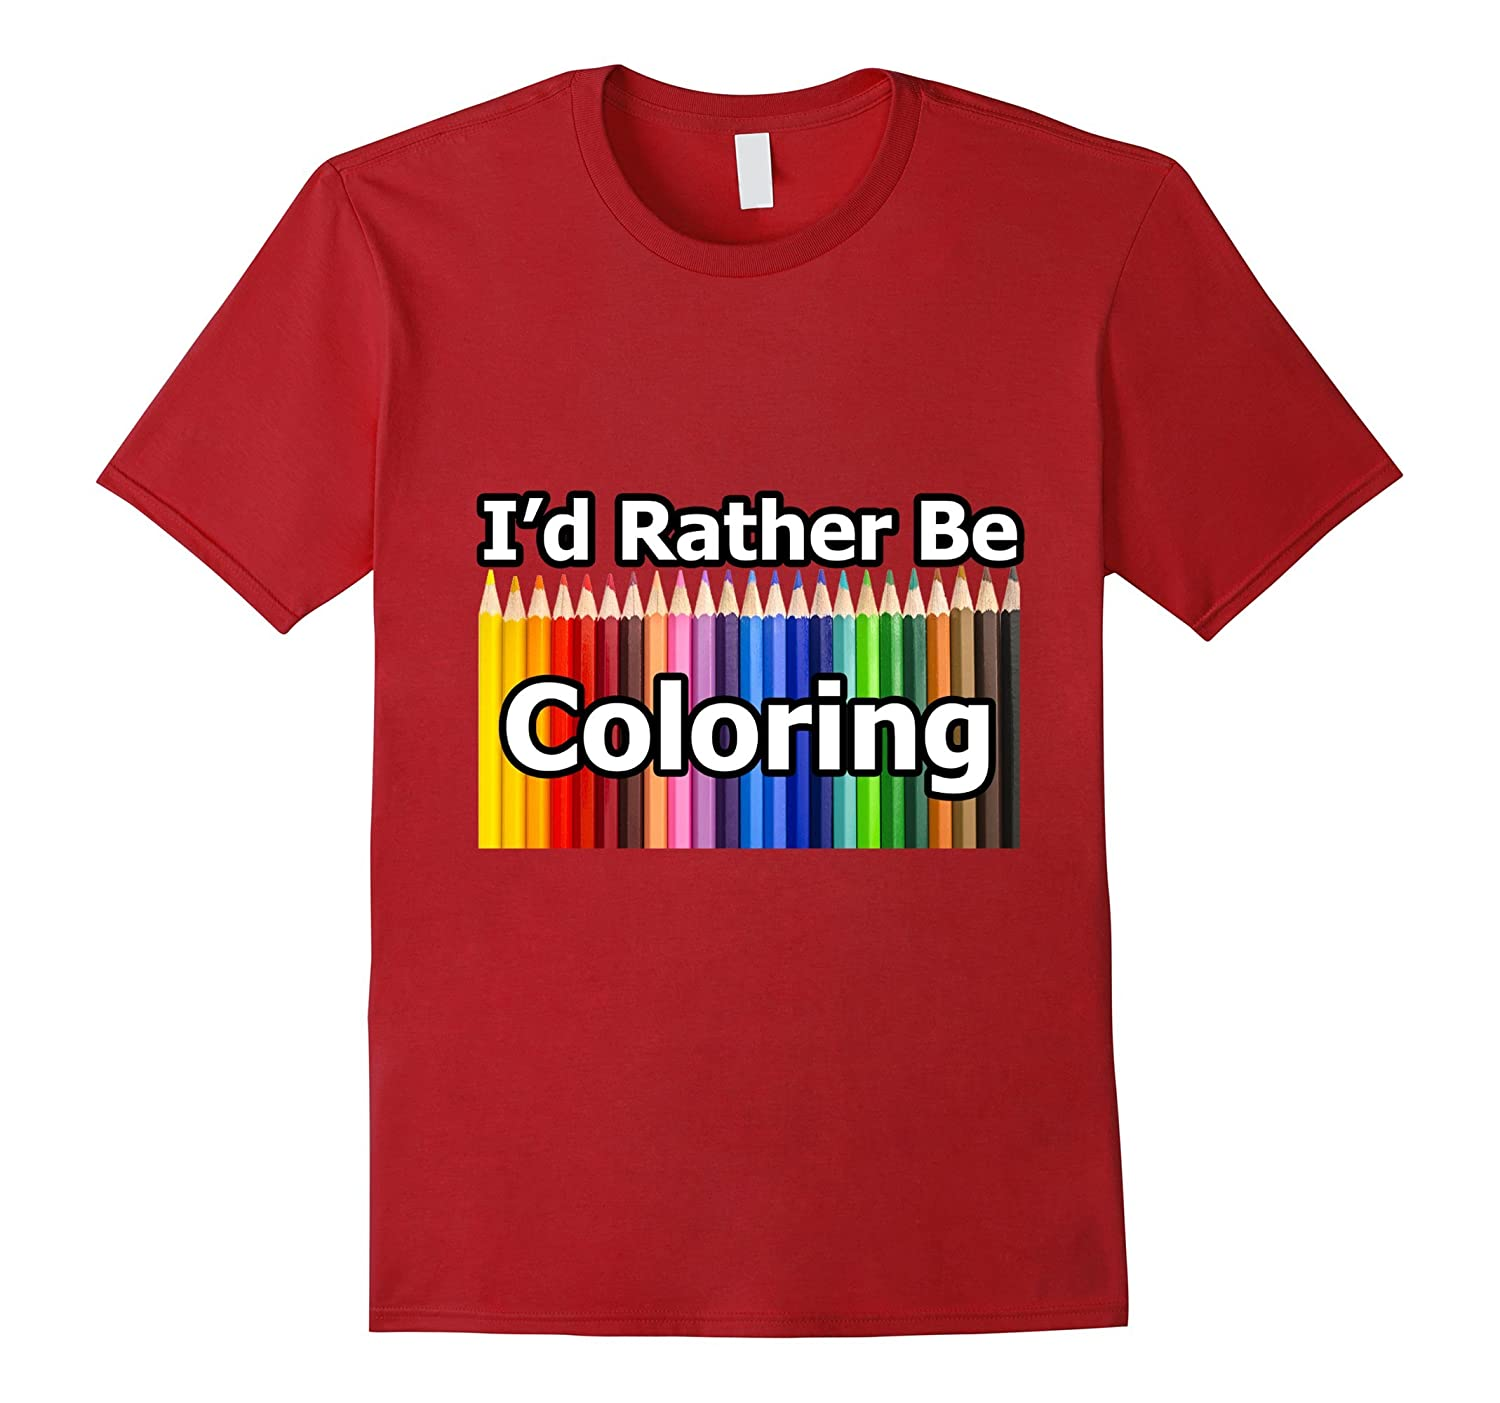 Adult Coloring Book T-Shirt says I'd Rather Be Coloring-BN